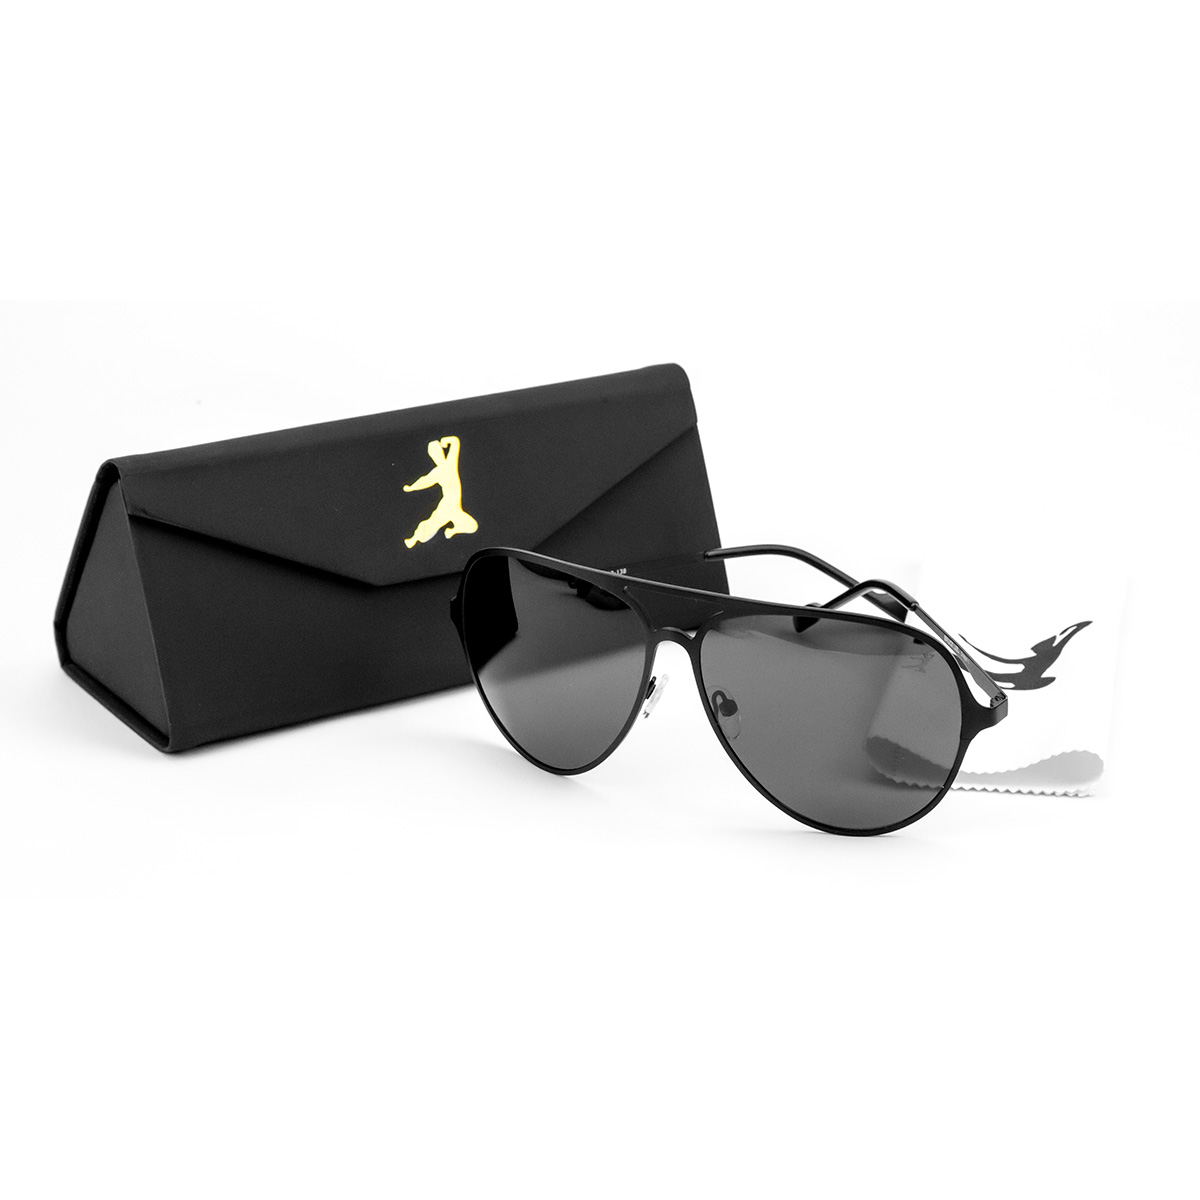 Bruce Lee Black Metal Sunglasses